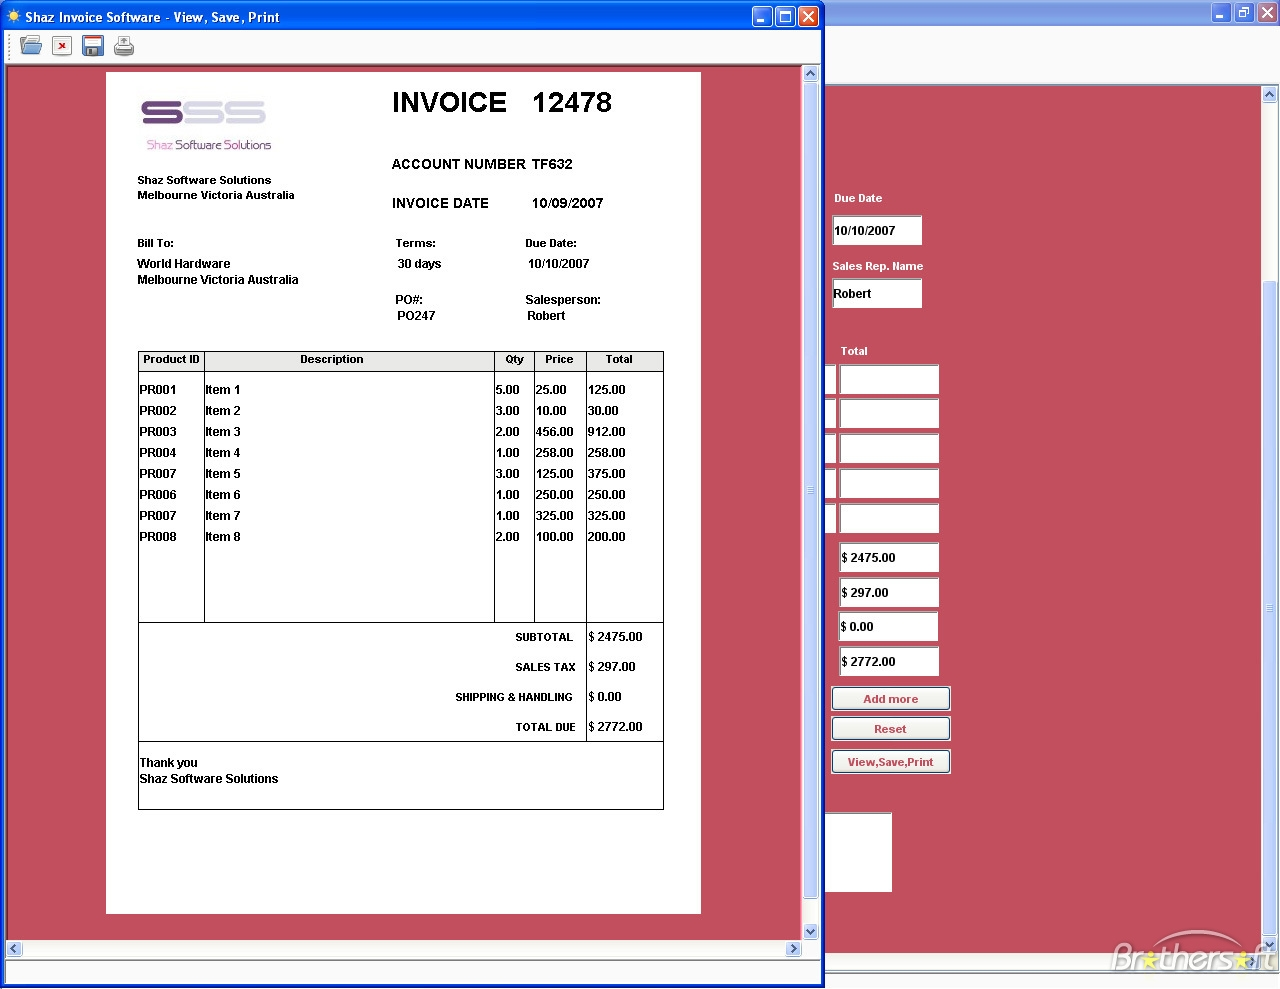 download free shaz invoice software shaz invoice software 100 download free invoice software